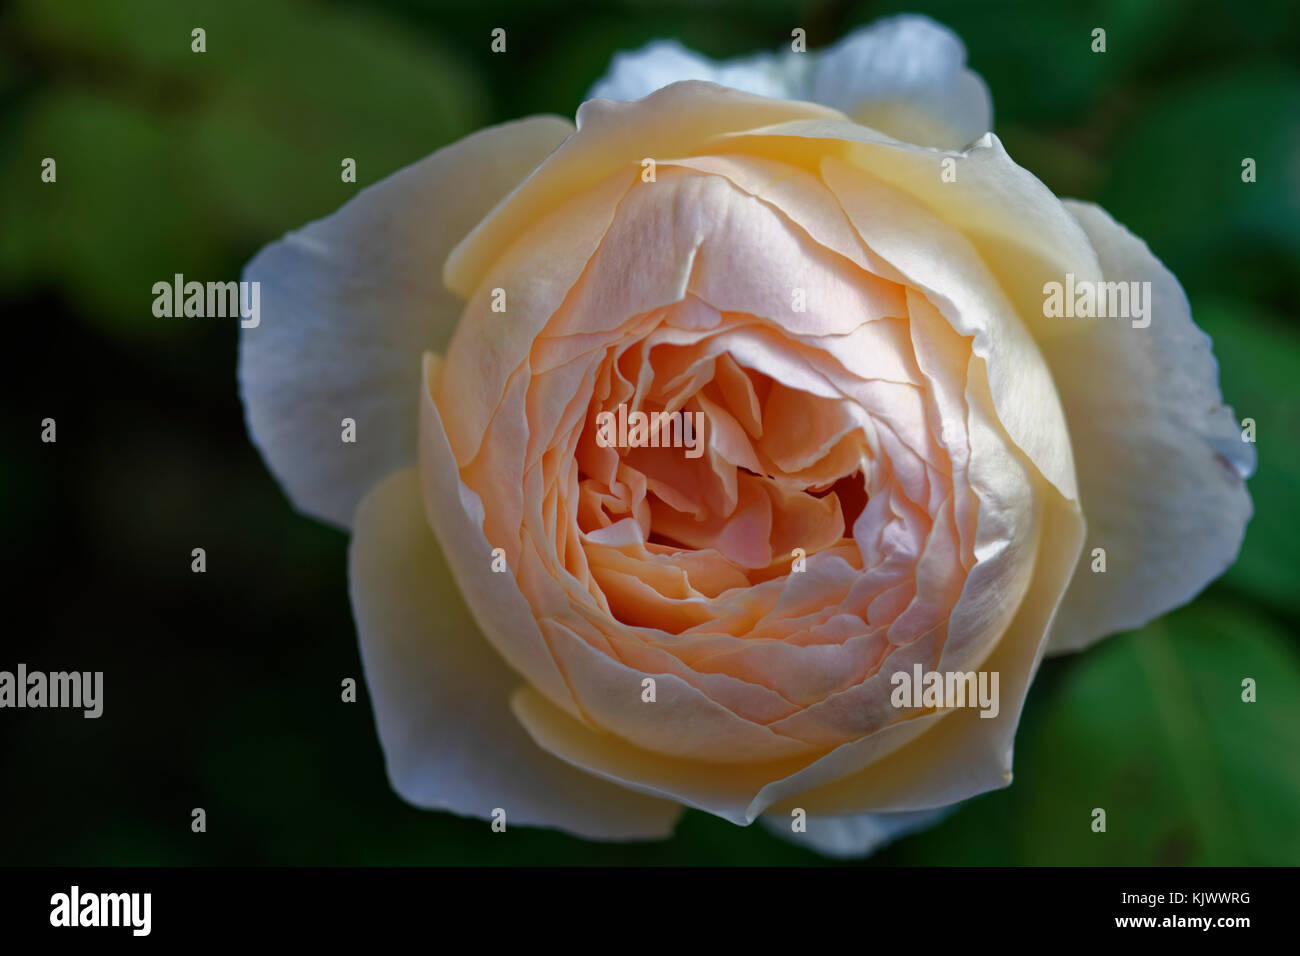 The name of this English Old Rose Hybrid is 'Jude the Obscure'. - Stock Image